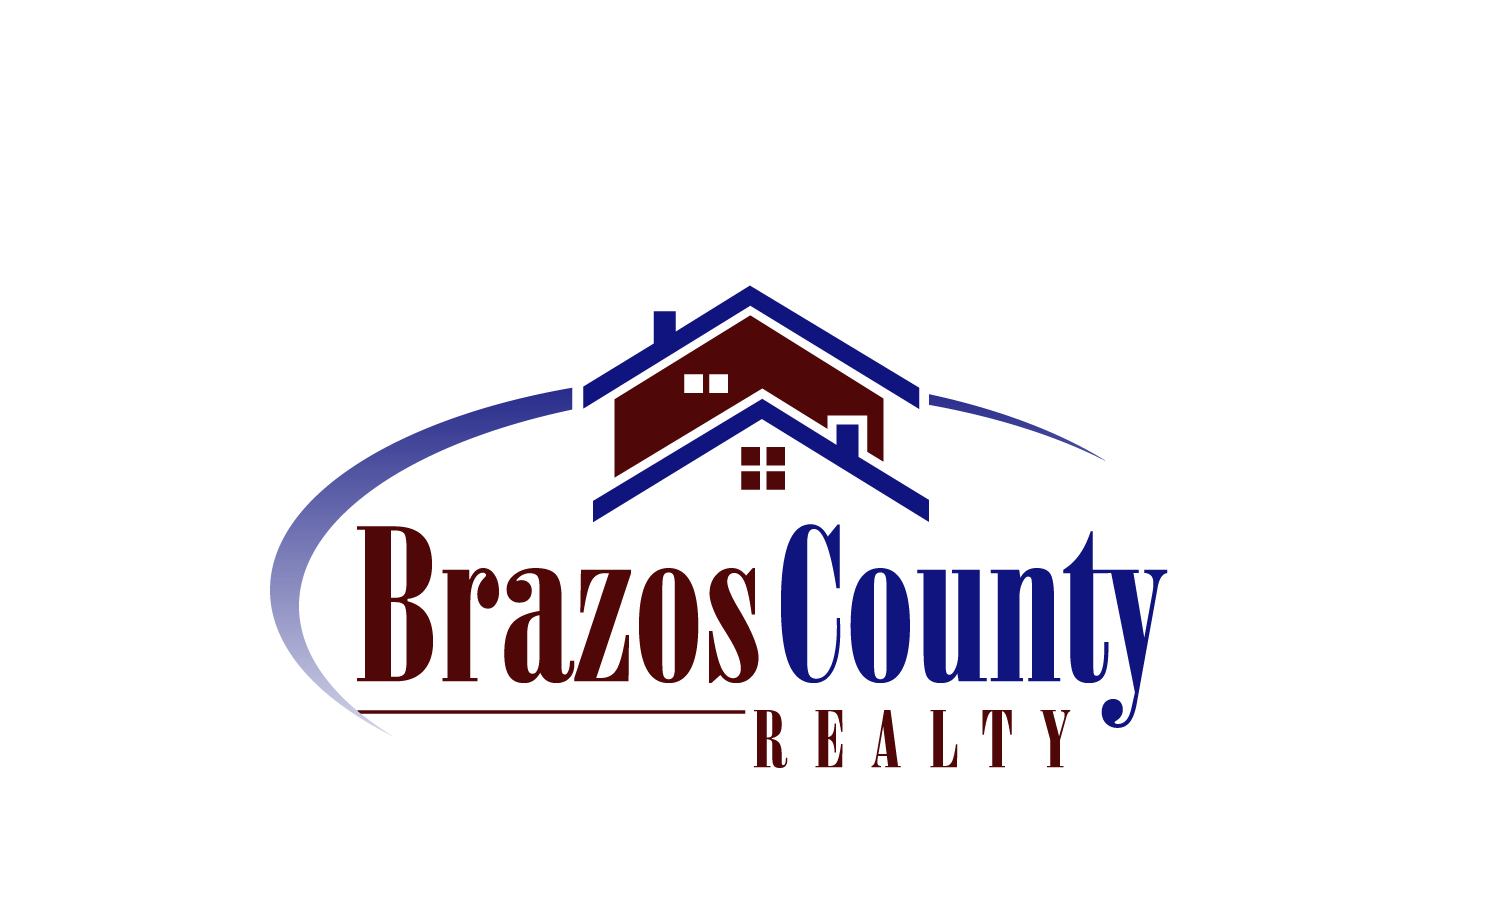 Brazos County Realty - College Station, TX 77845 - (979)693-0201 | ShowMeLocal.com